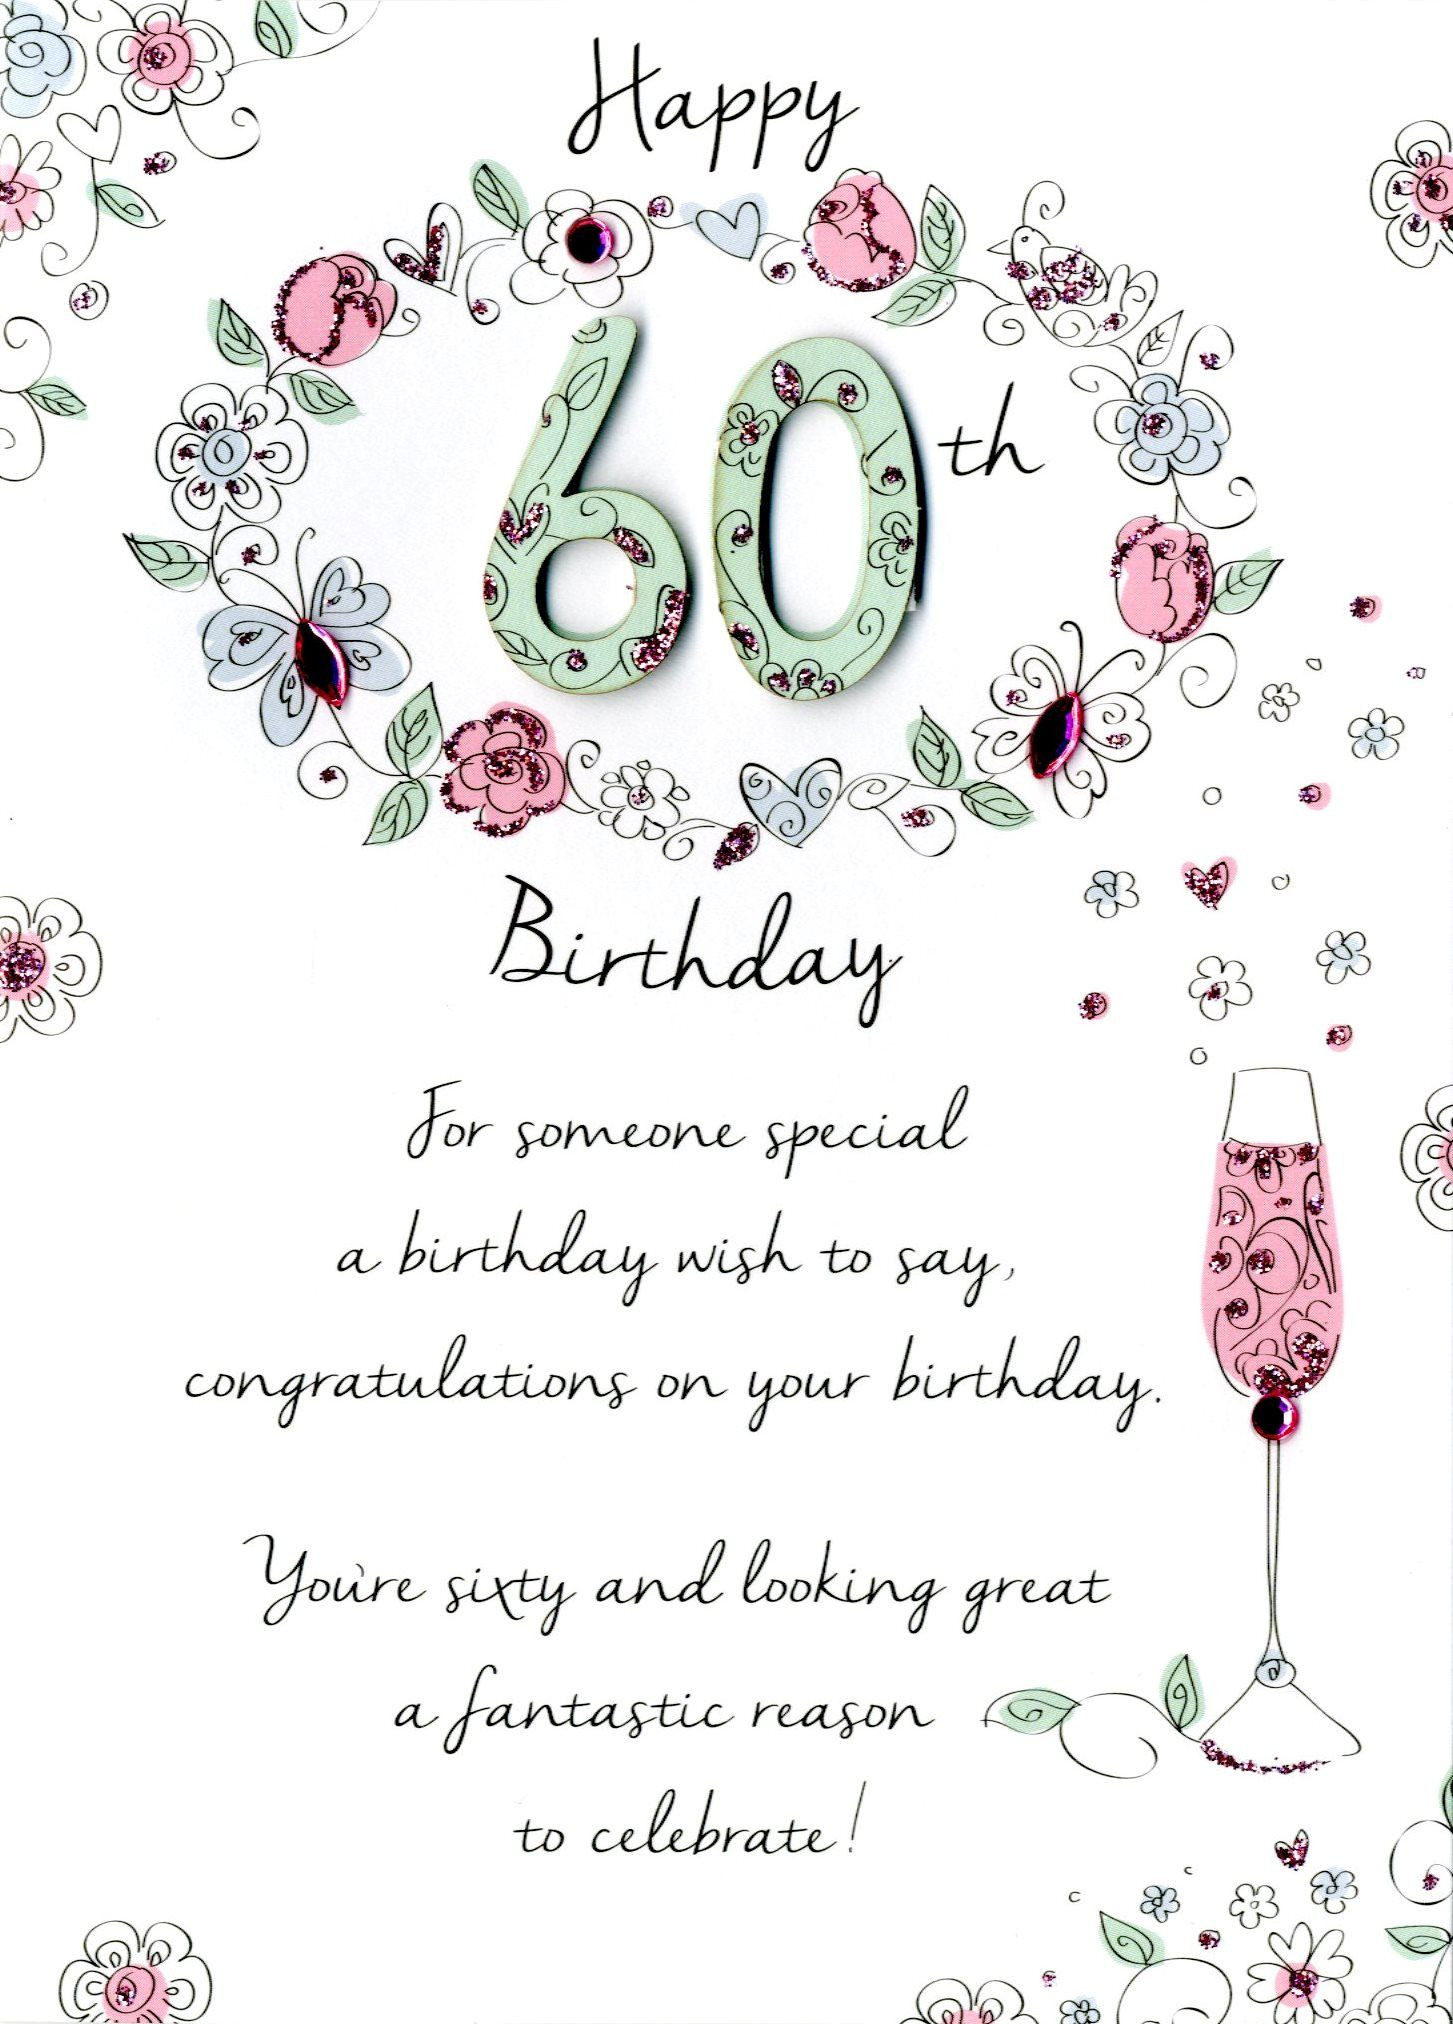 Best ideas about 60th Birthday Wishes For Female Friend . Save or Pin Afbeeldingsresultaat voor 60th birthday wishes Now.